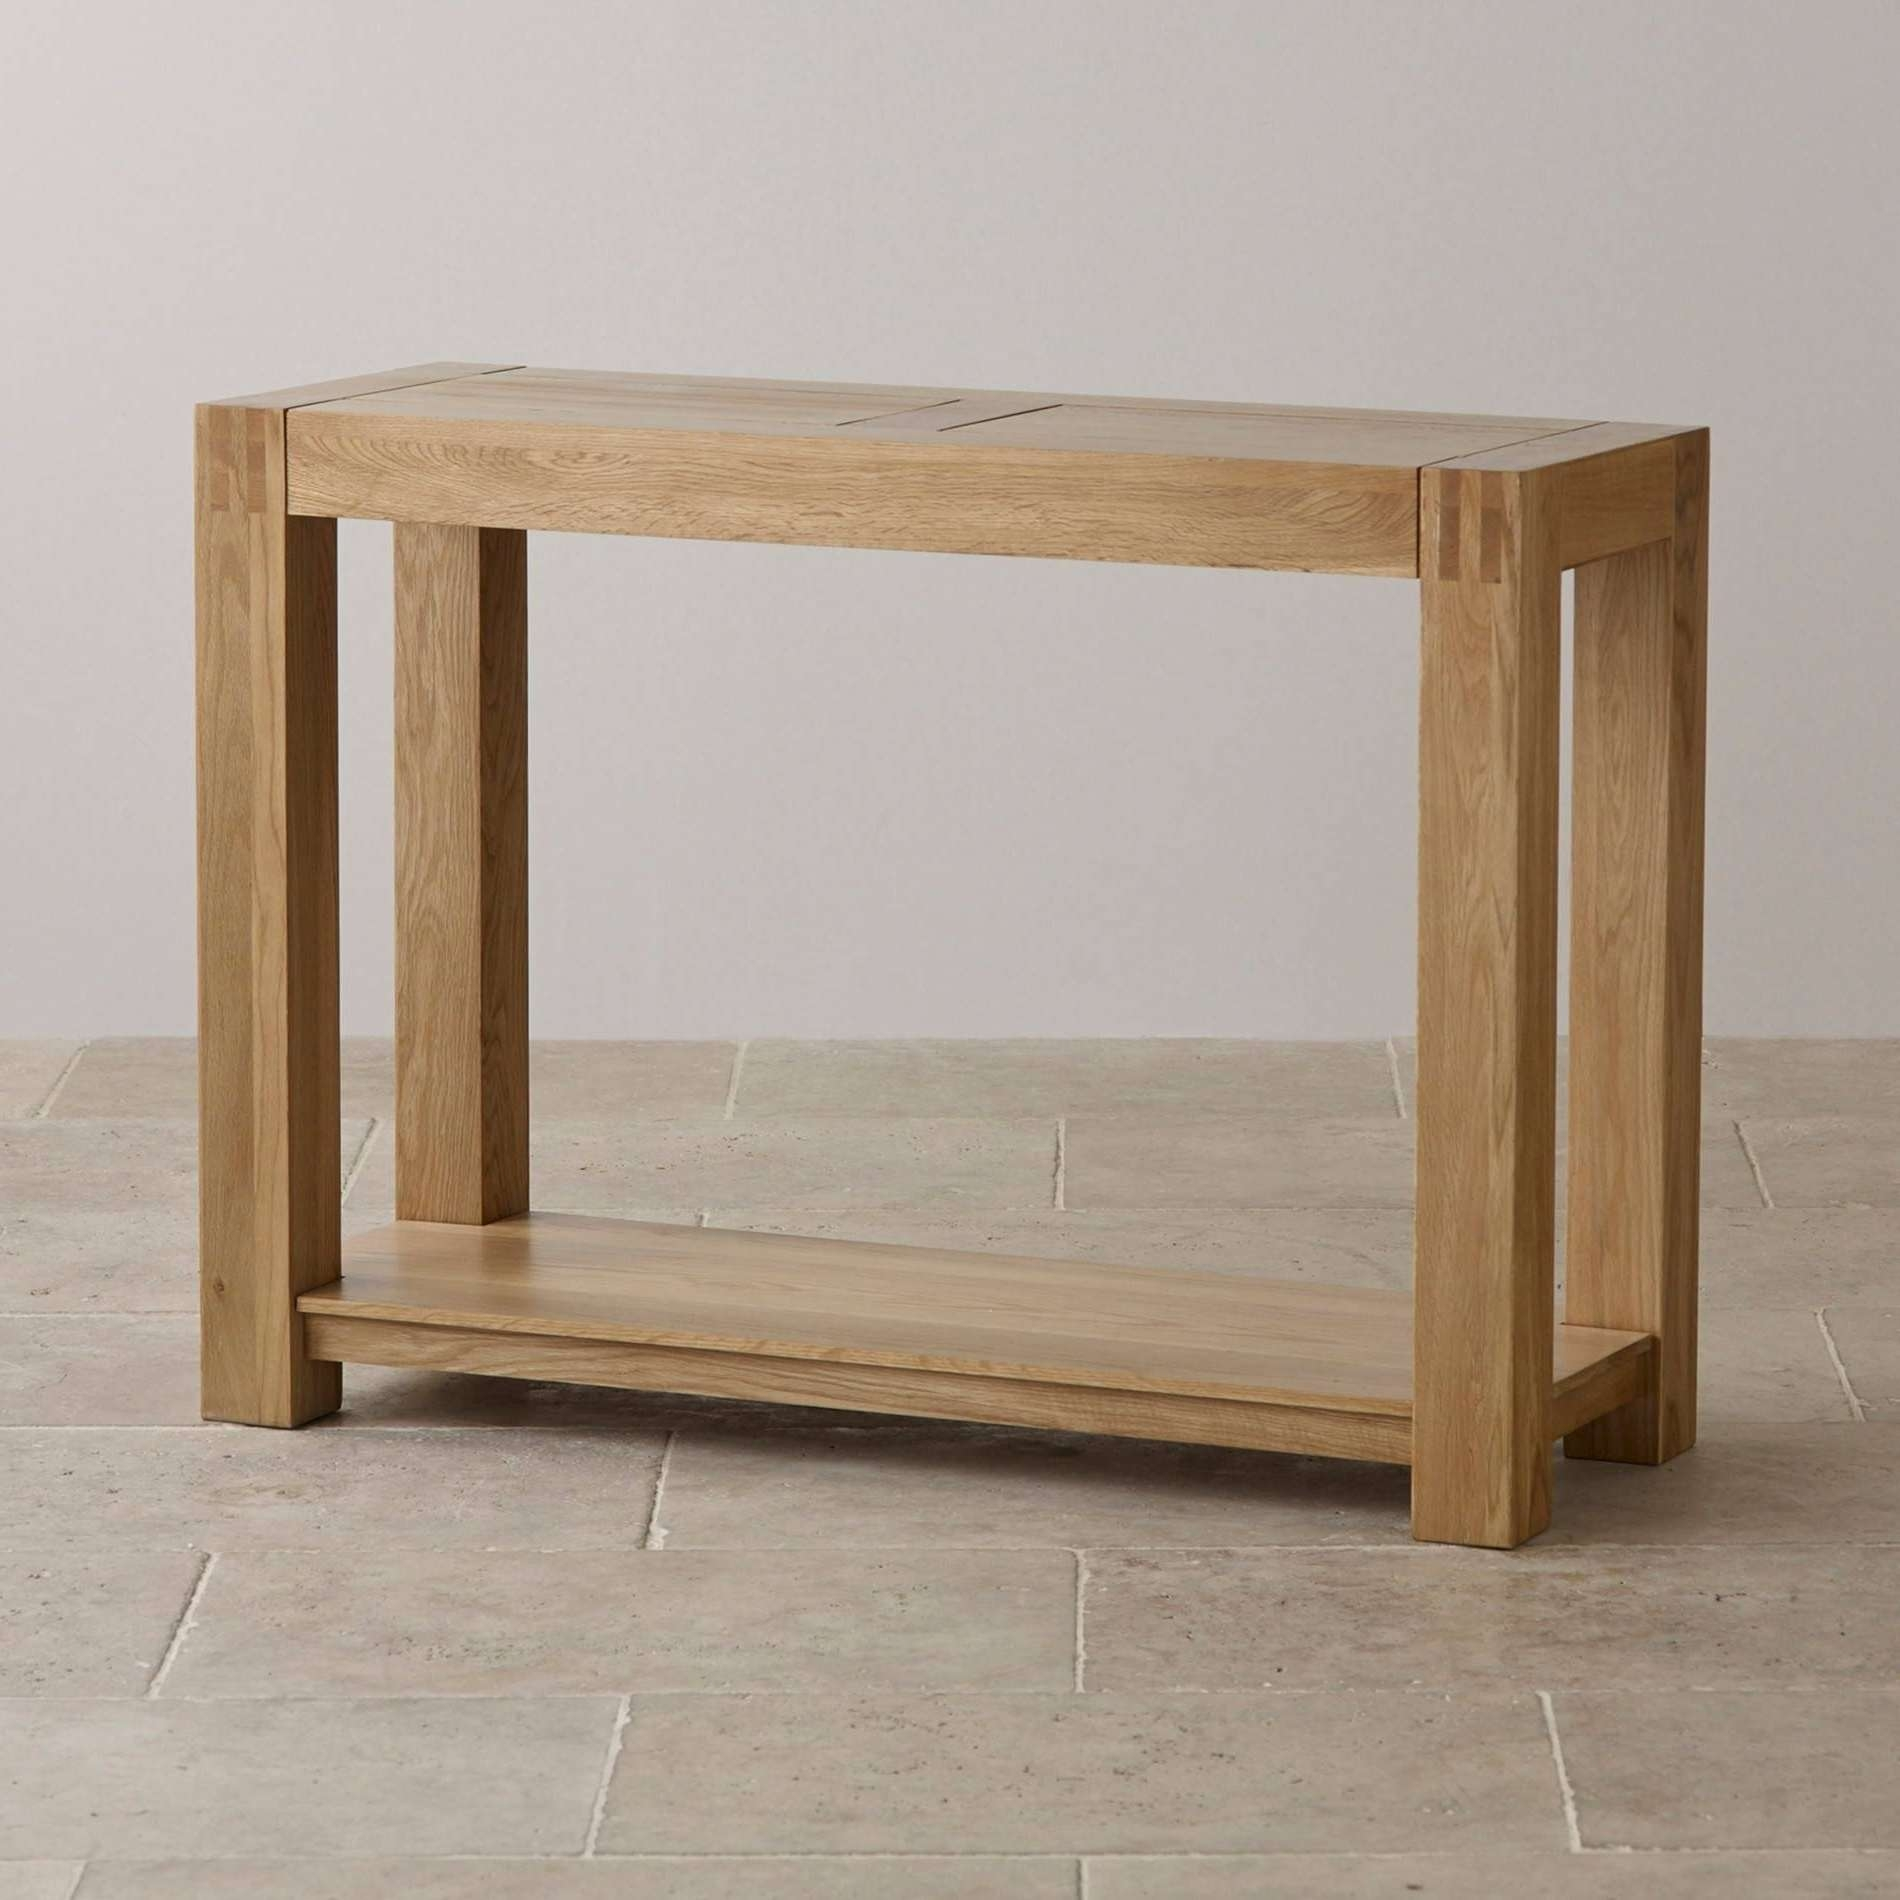 Awesome 12 Inch Deep Sideboard – Buildsimplehome For 12 Inch Deep Sideboards (View 17 of 20)